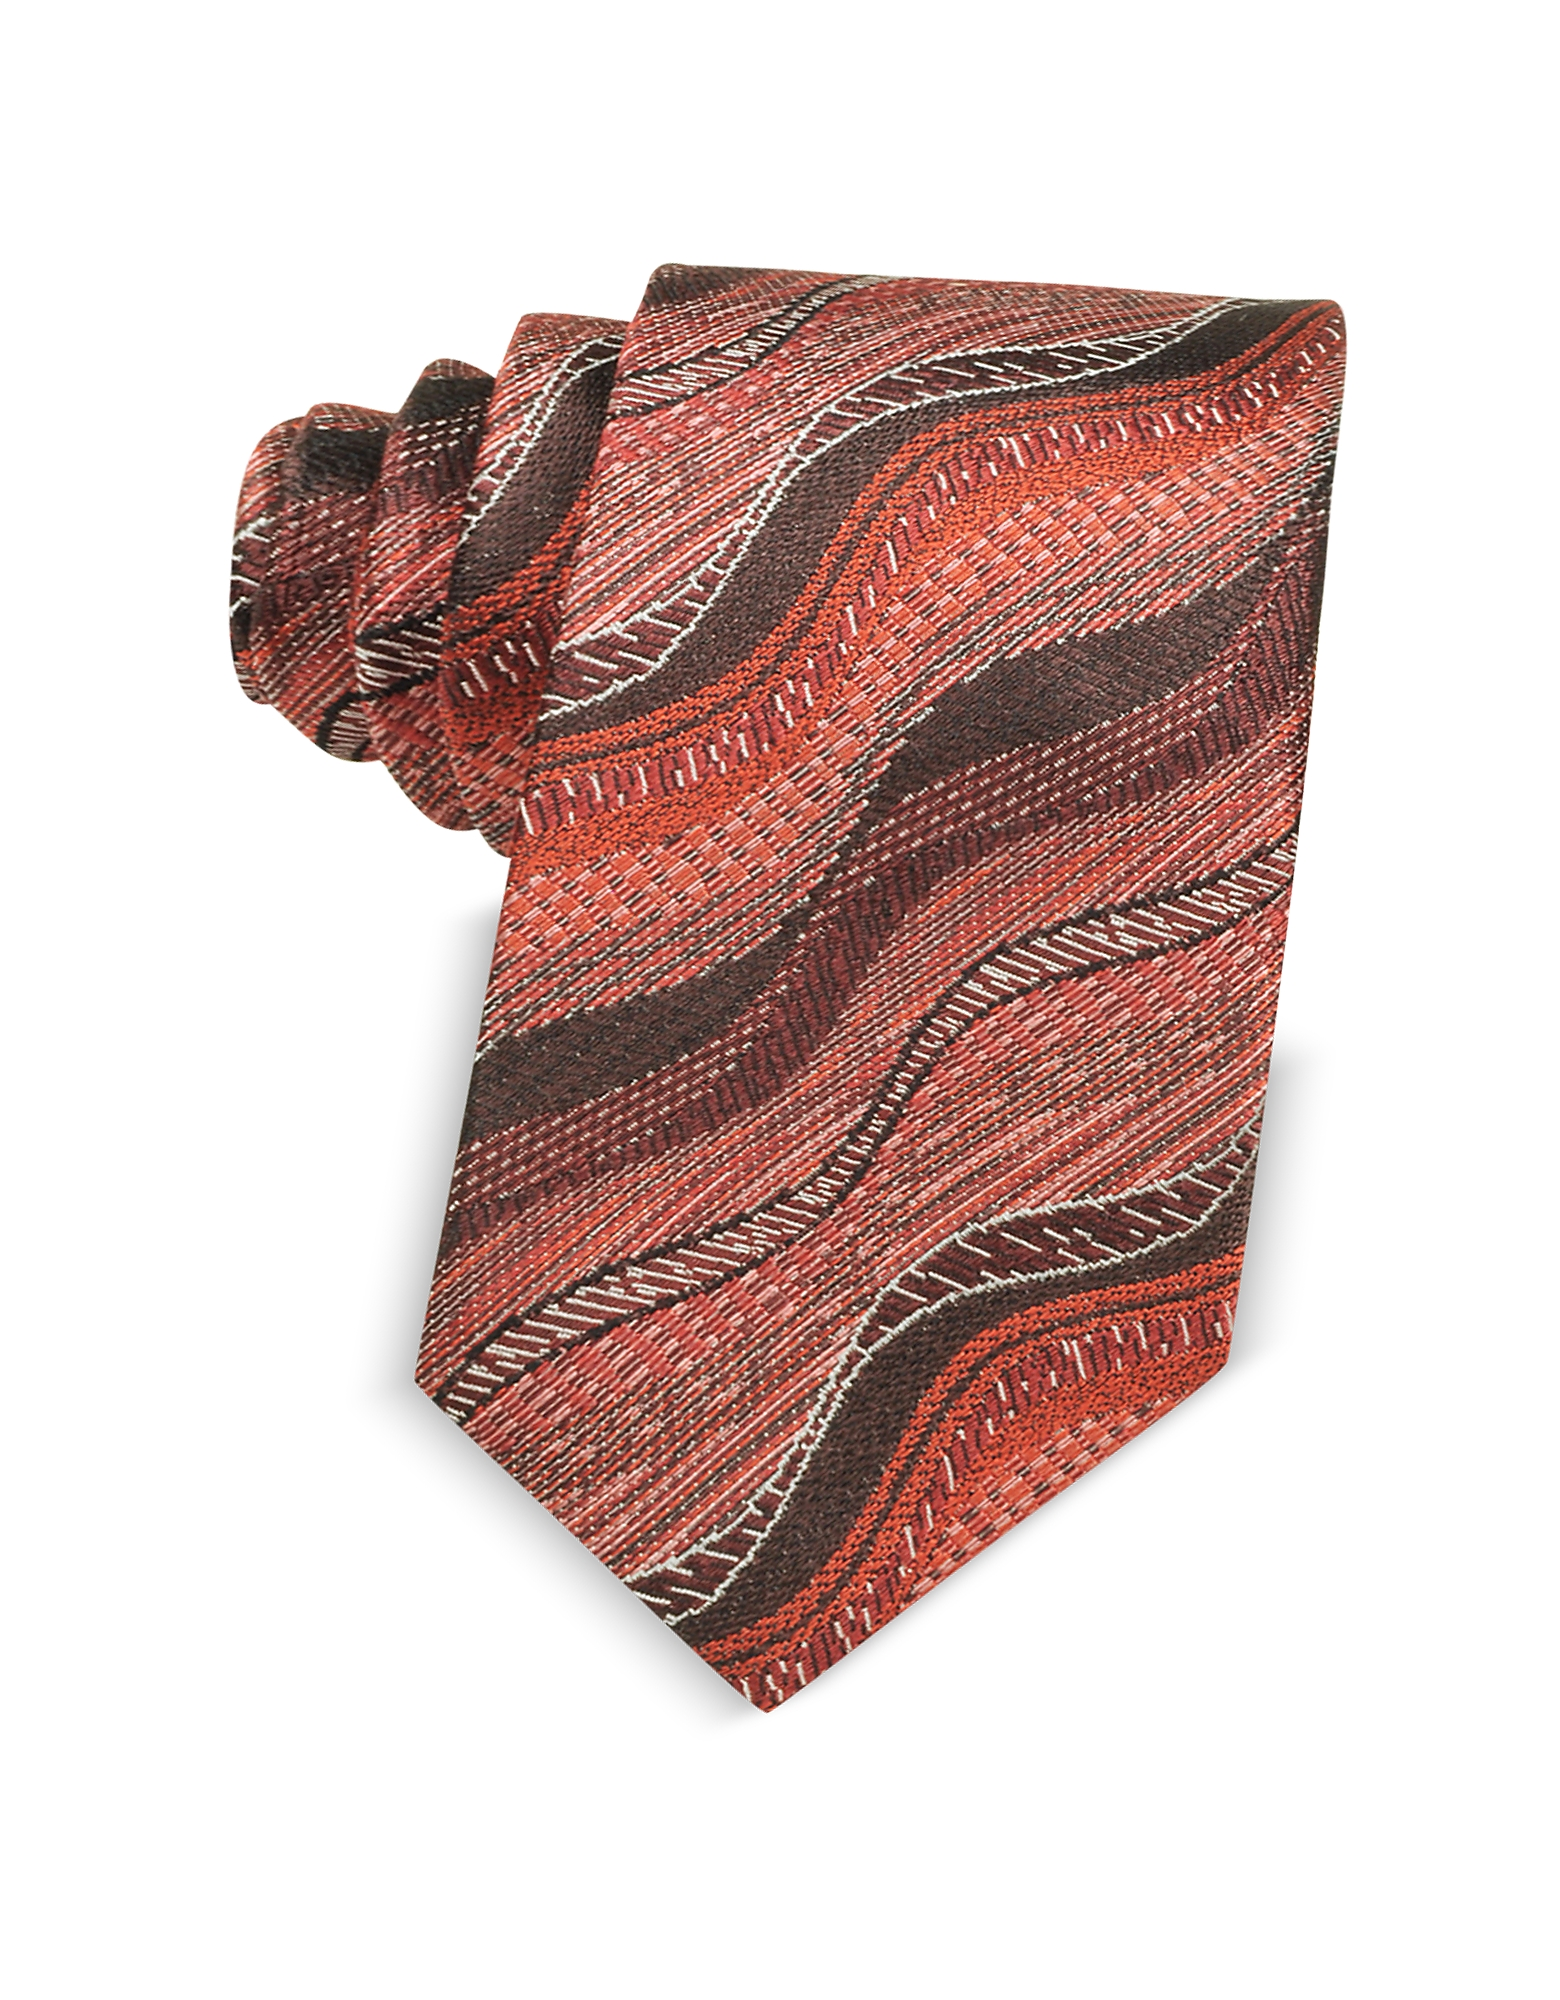 Missoni Ties, Waves Woven Twill Silk Men's Narrow Tie